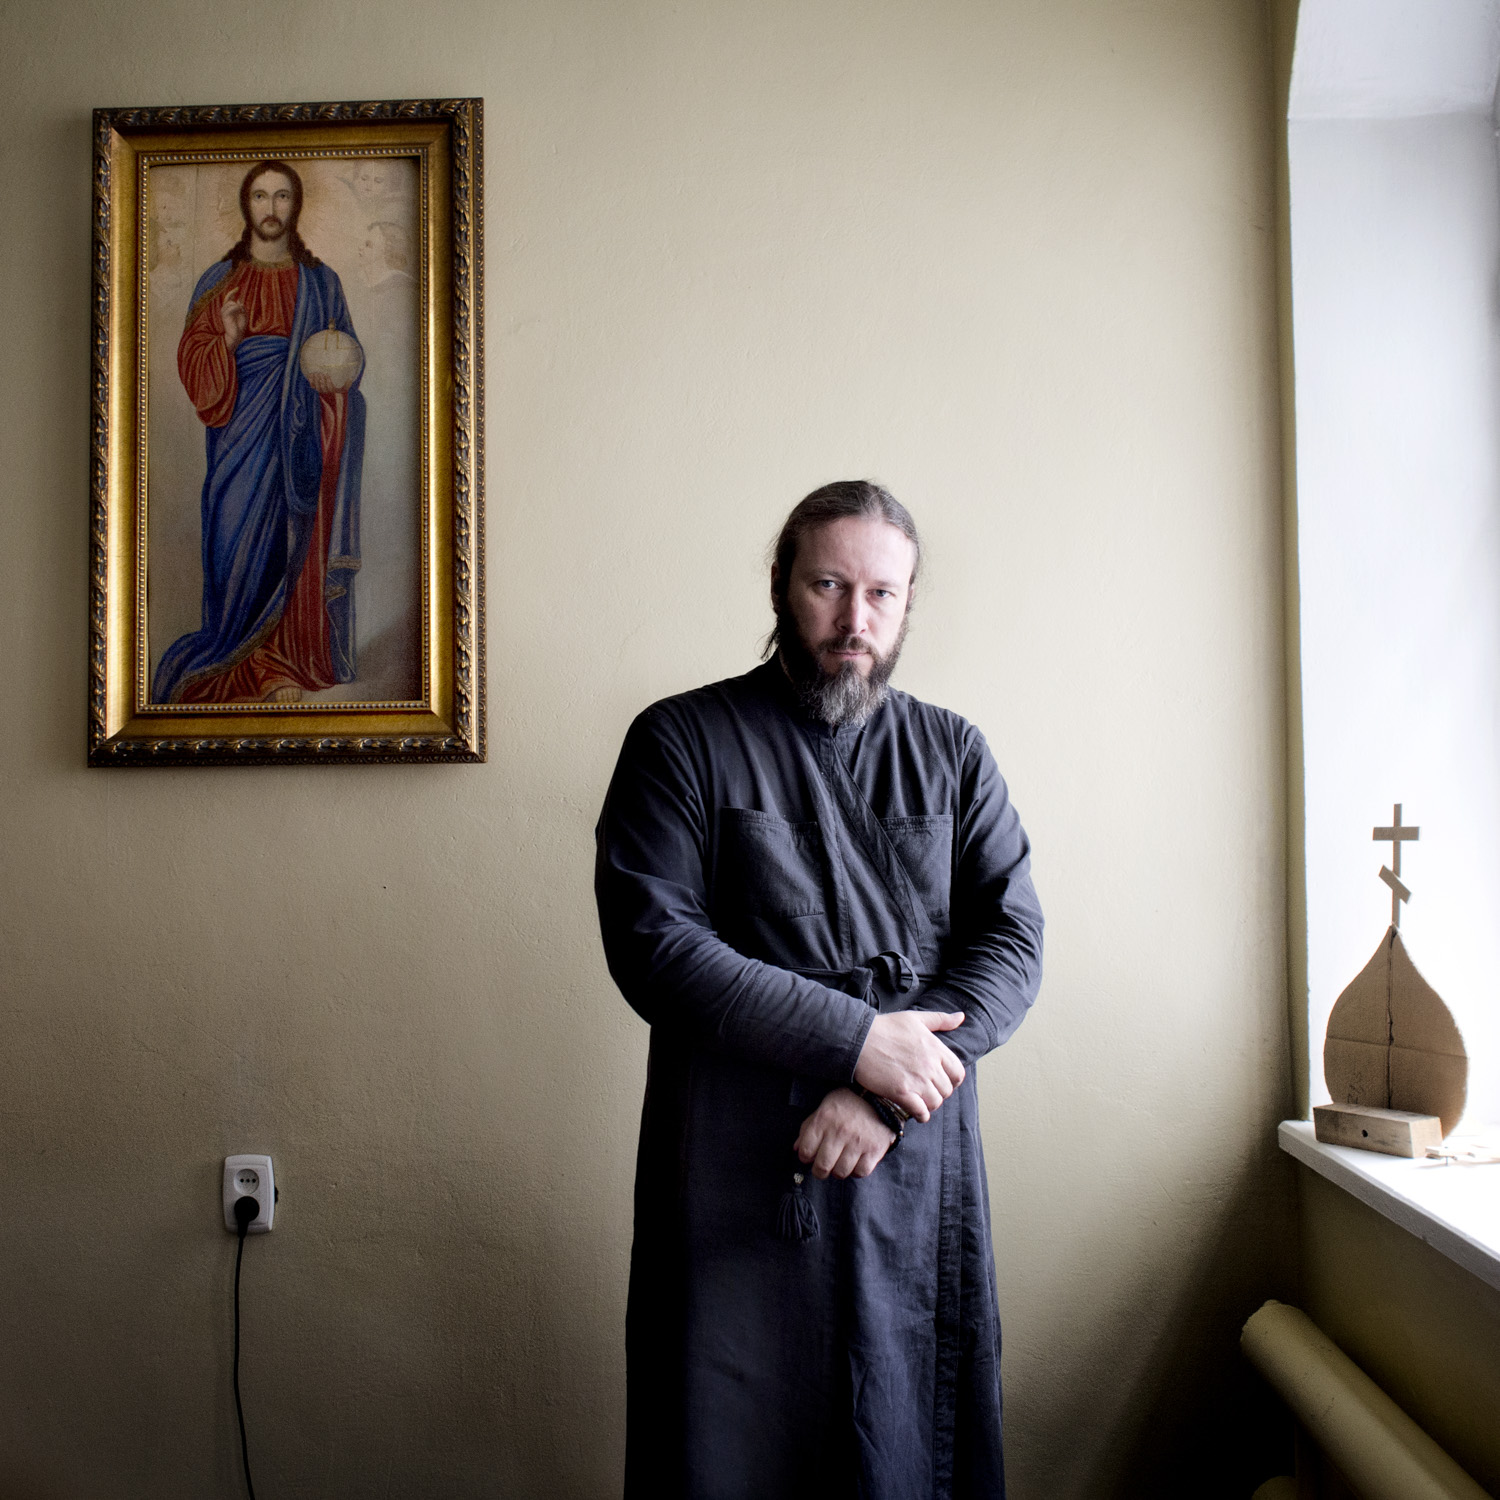 Hegumen Euthymios (Moses), the first vice-rector of the Kazan Orthodox Theological Seminary found himself surpised at the extend of peaceful and friendly relationship between the religions in the region. Coming from Moscow he is used to more scepticism between the groups.